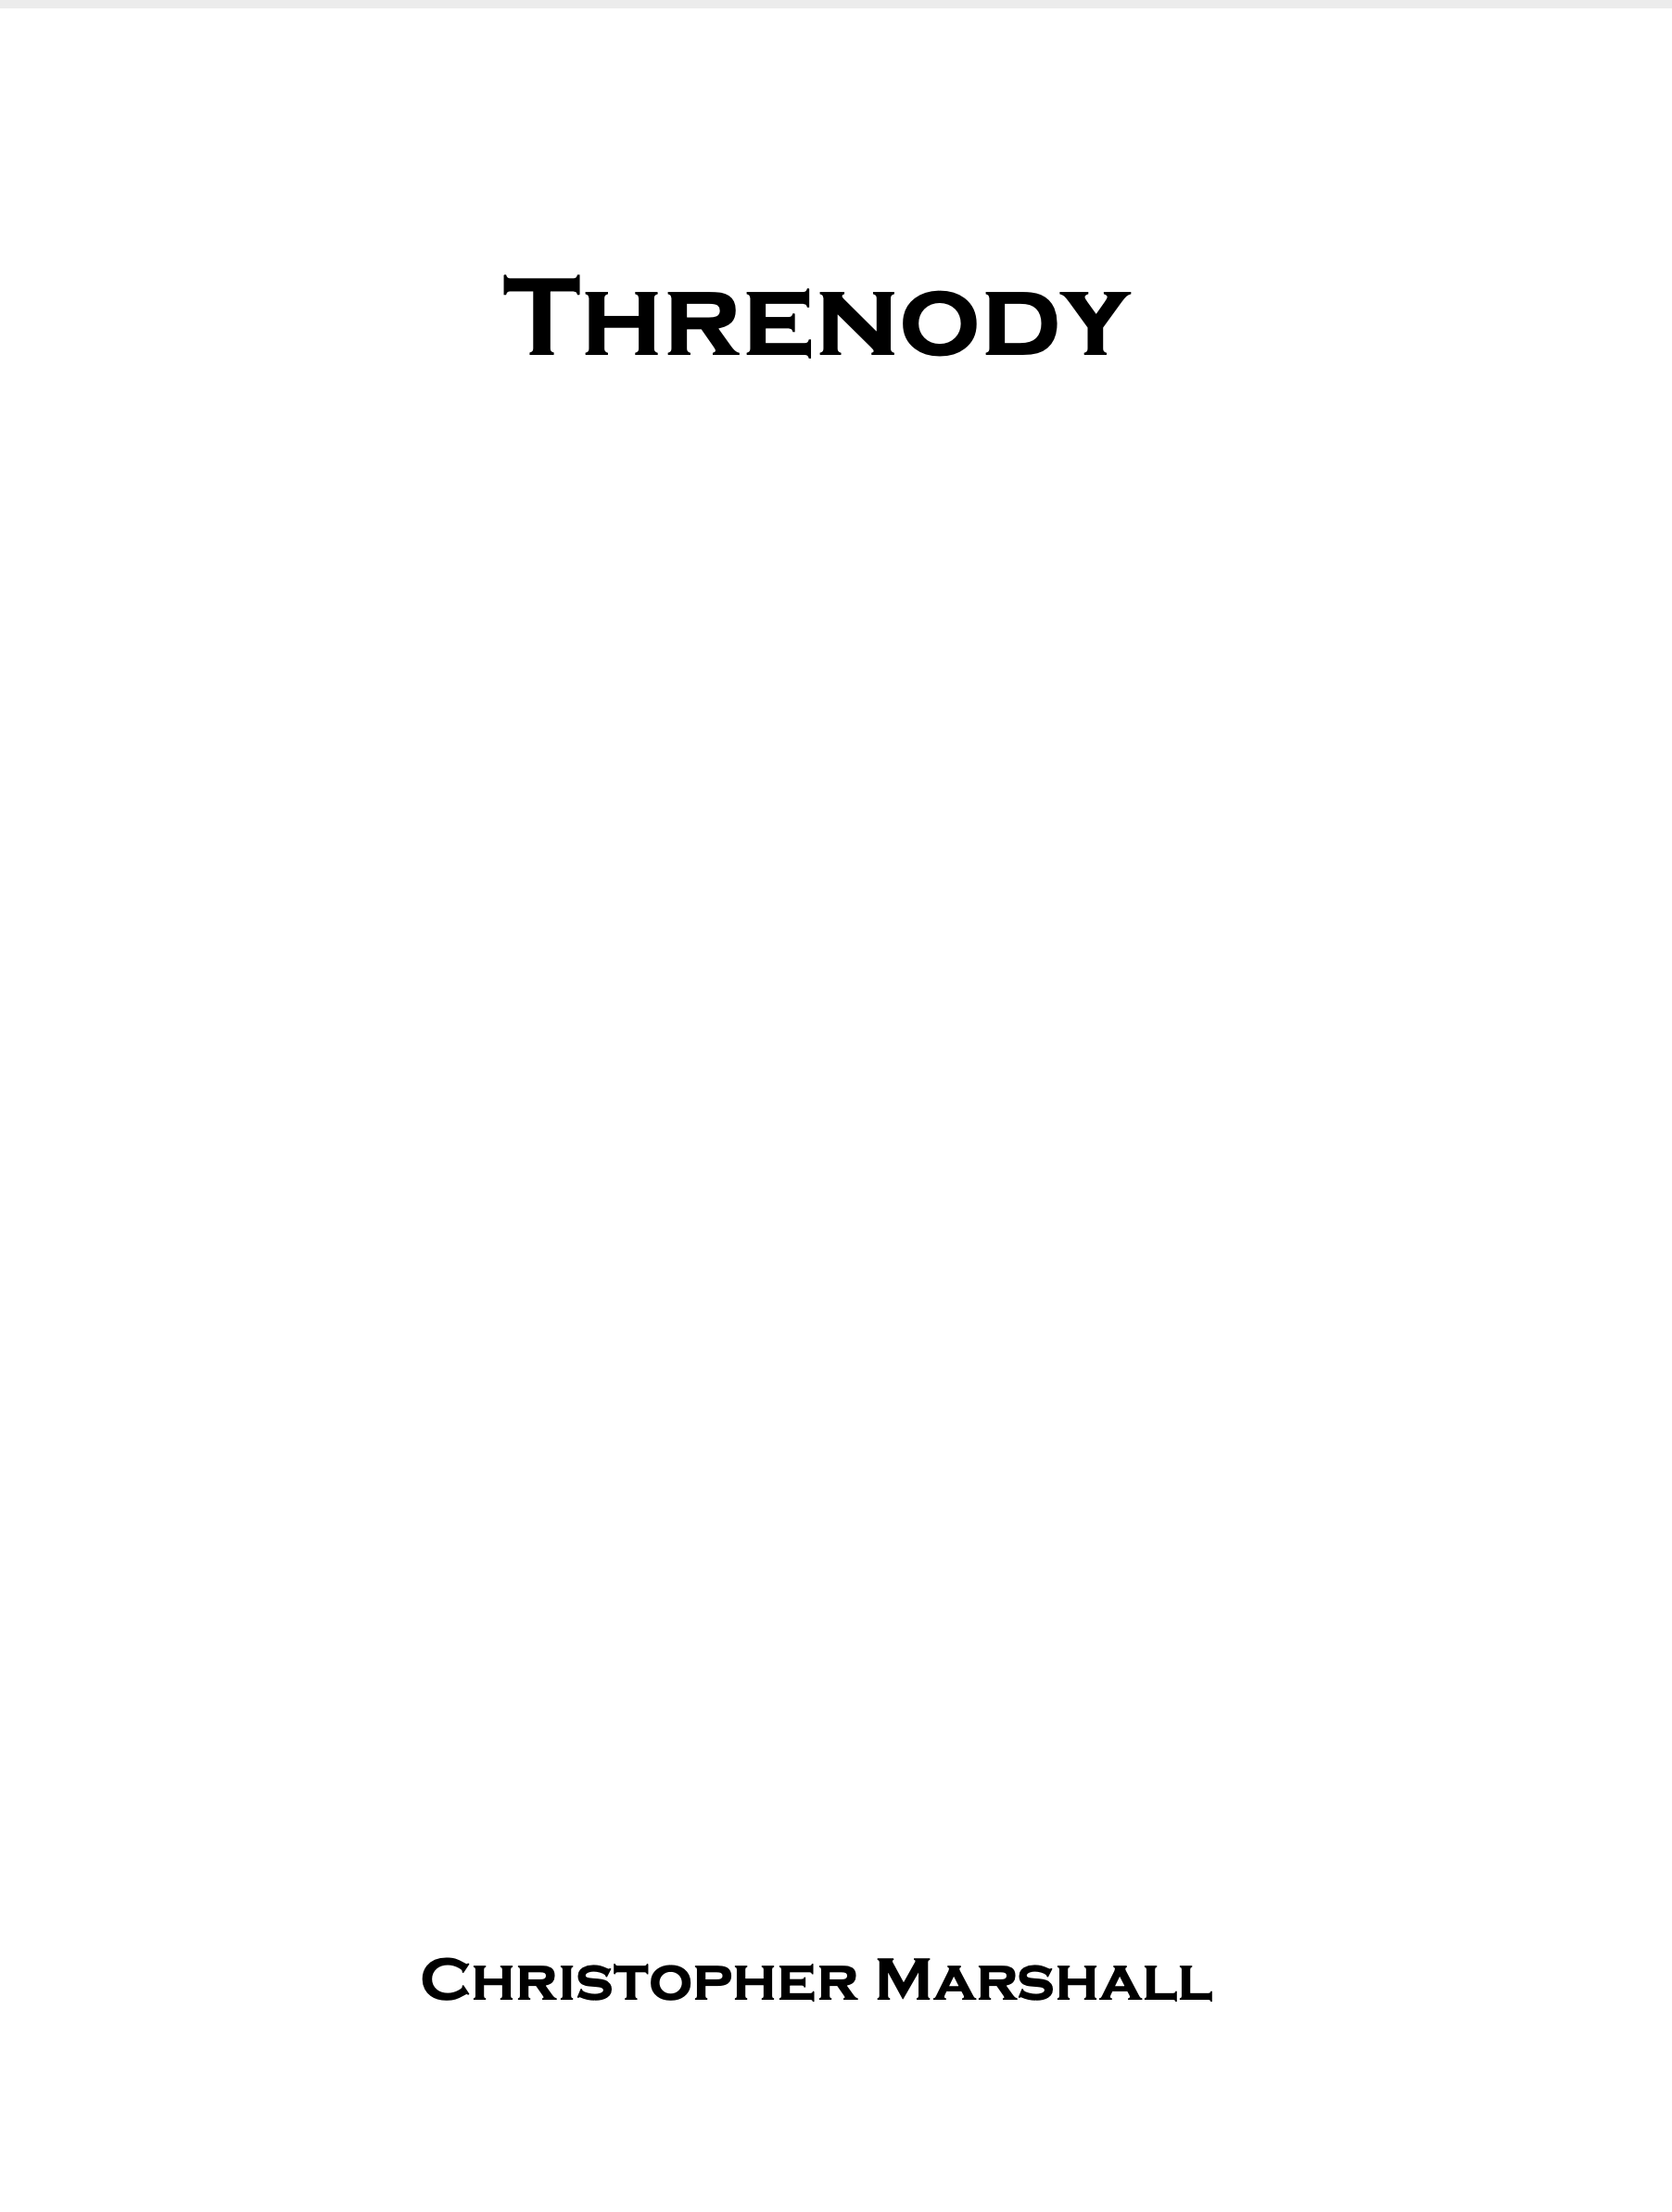 Threnody by Christopher Marshall